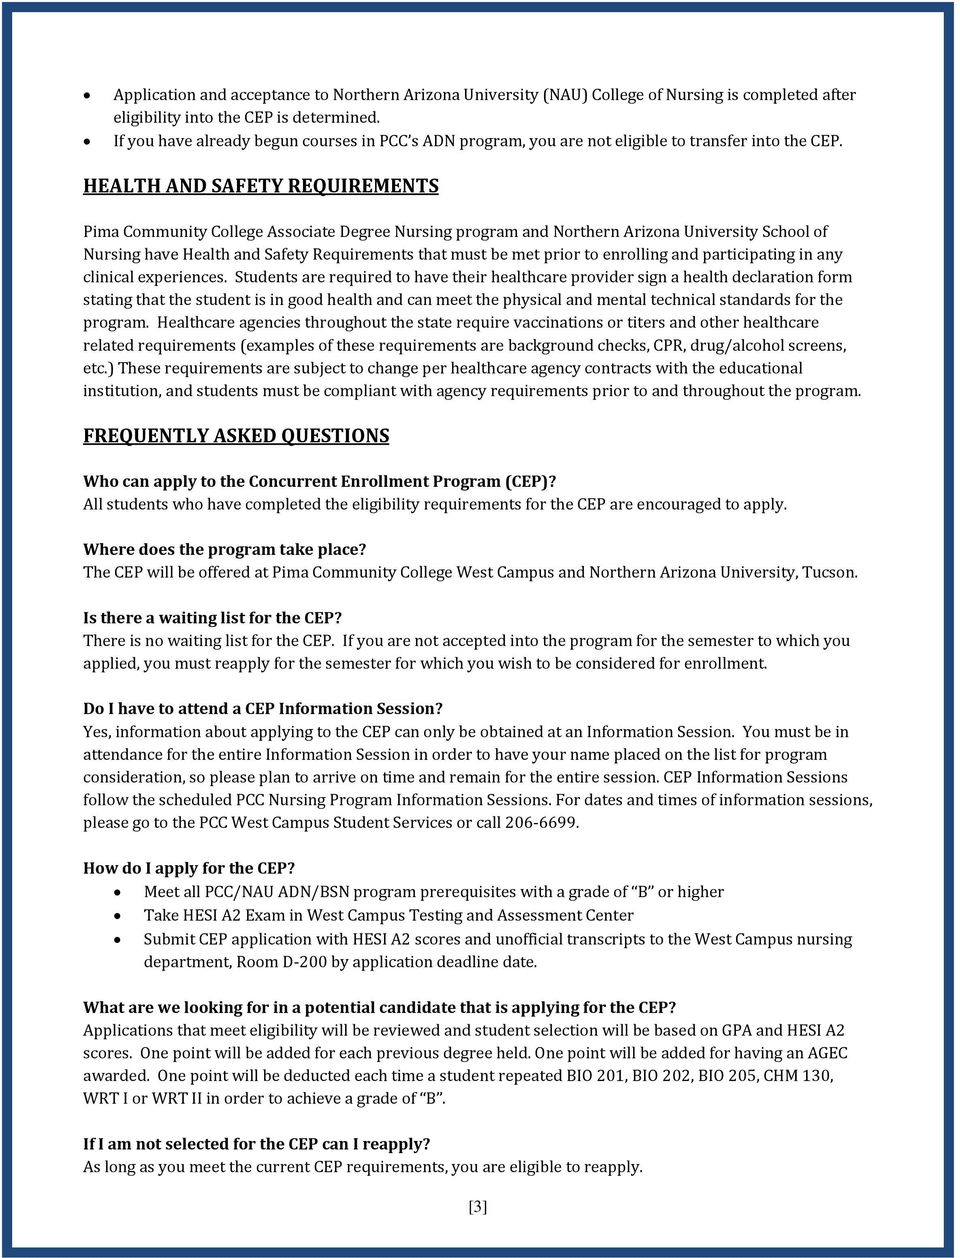 HEALTH AND SAFETY REQUIREMENTS Pima Community College Associate Degree Nursing program and Northern Arizona University School of Nursing have Health and Safety Requirements that must be met prior to